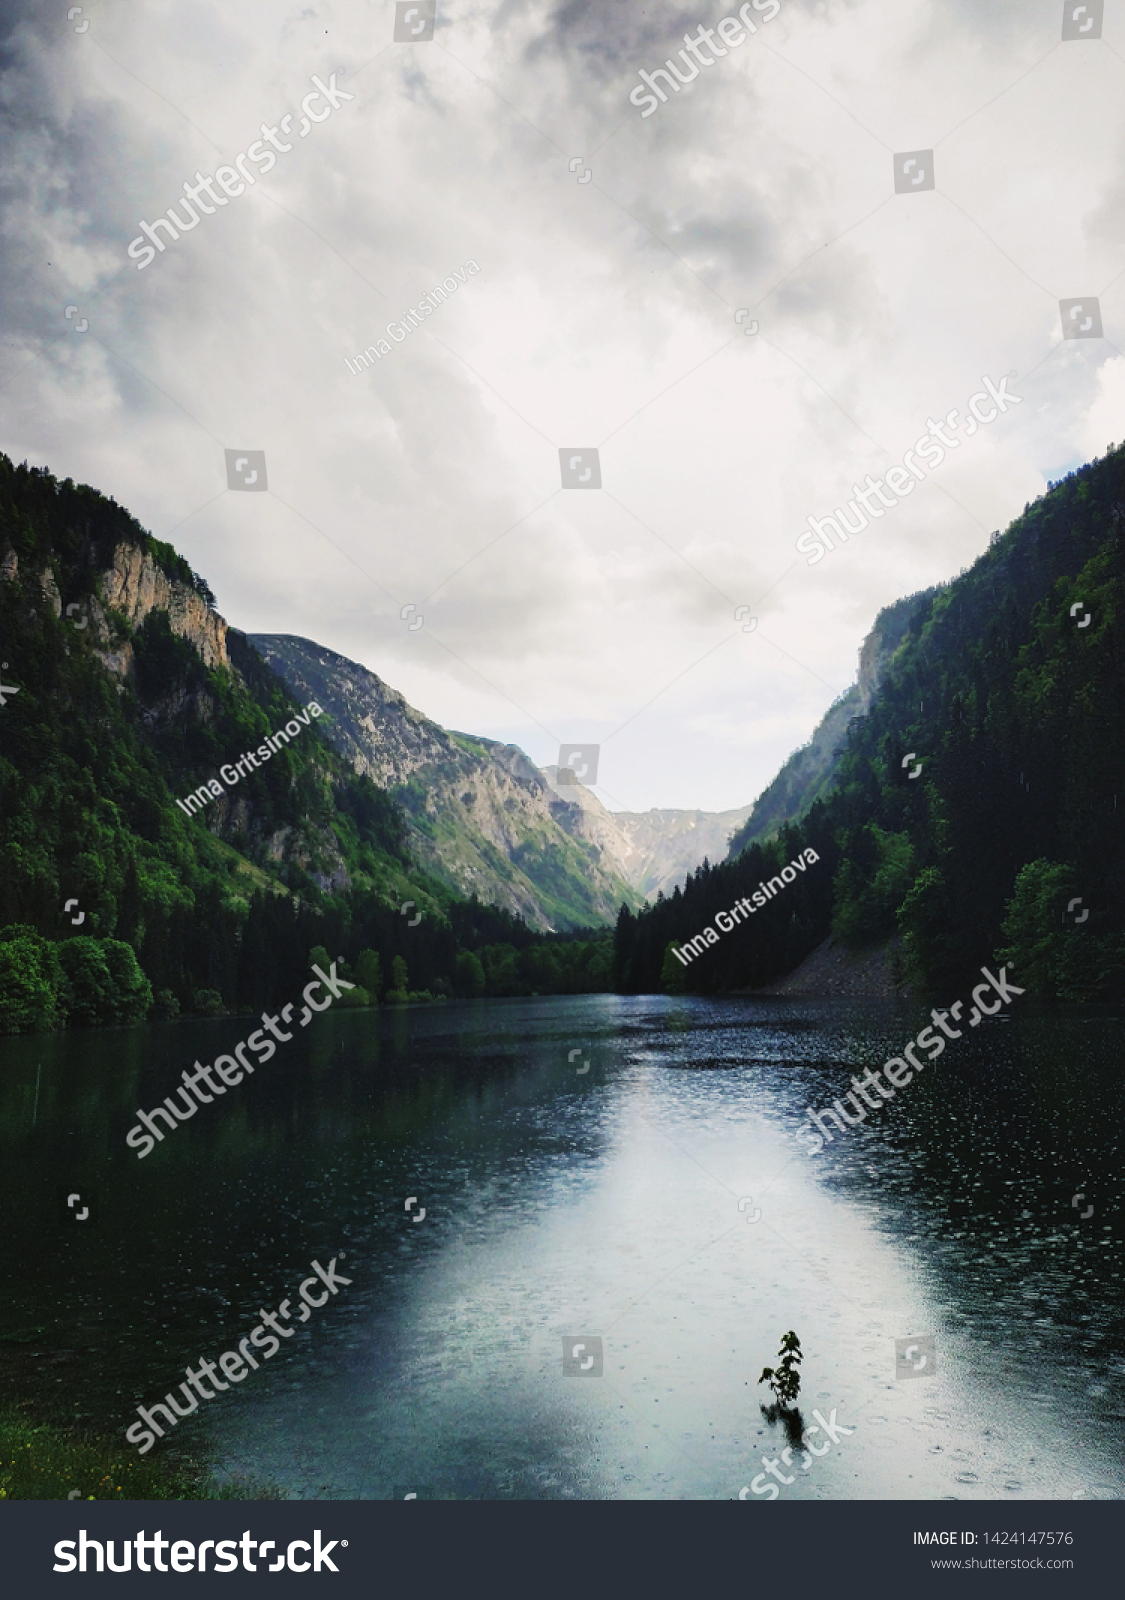 stock-photo-beautiful-lake-su-i-ko-susic